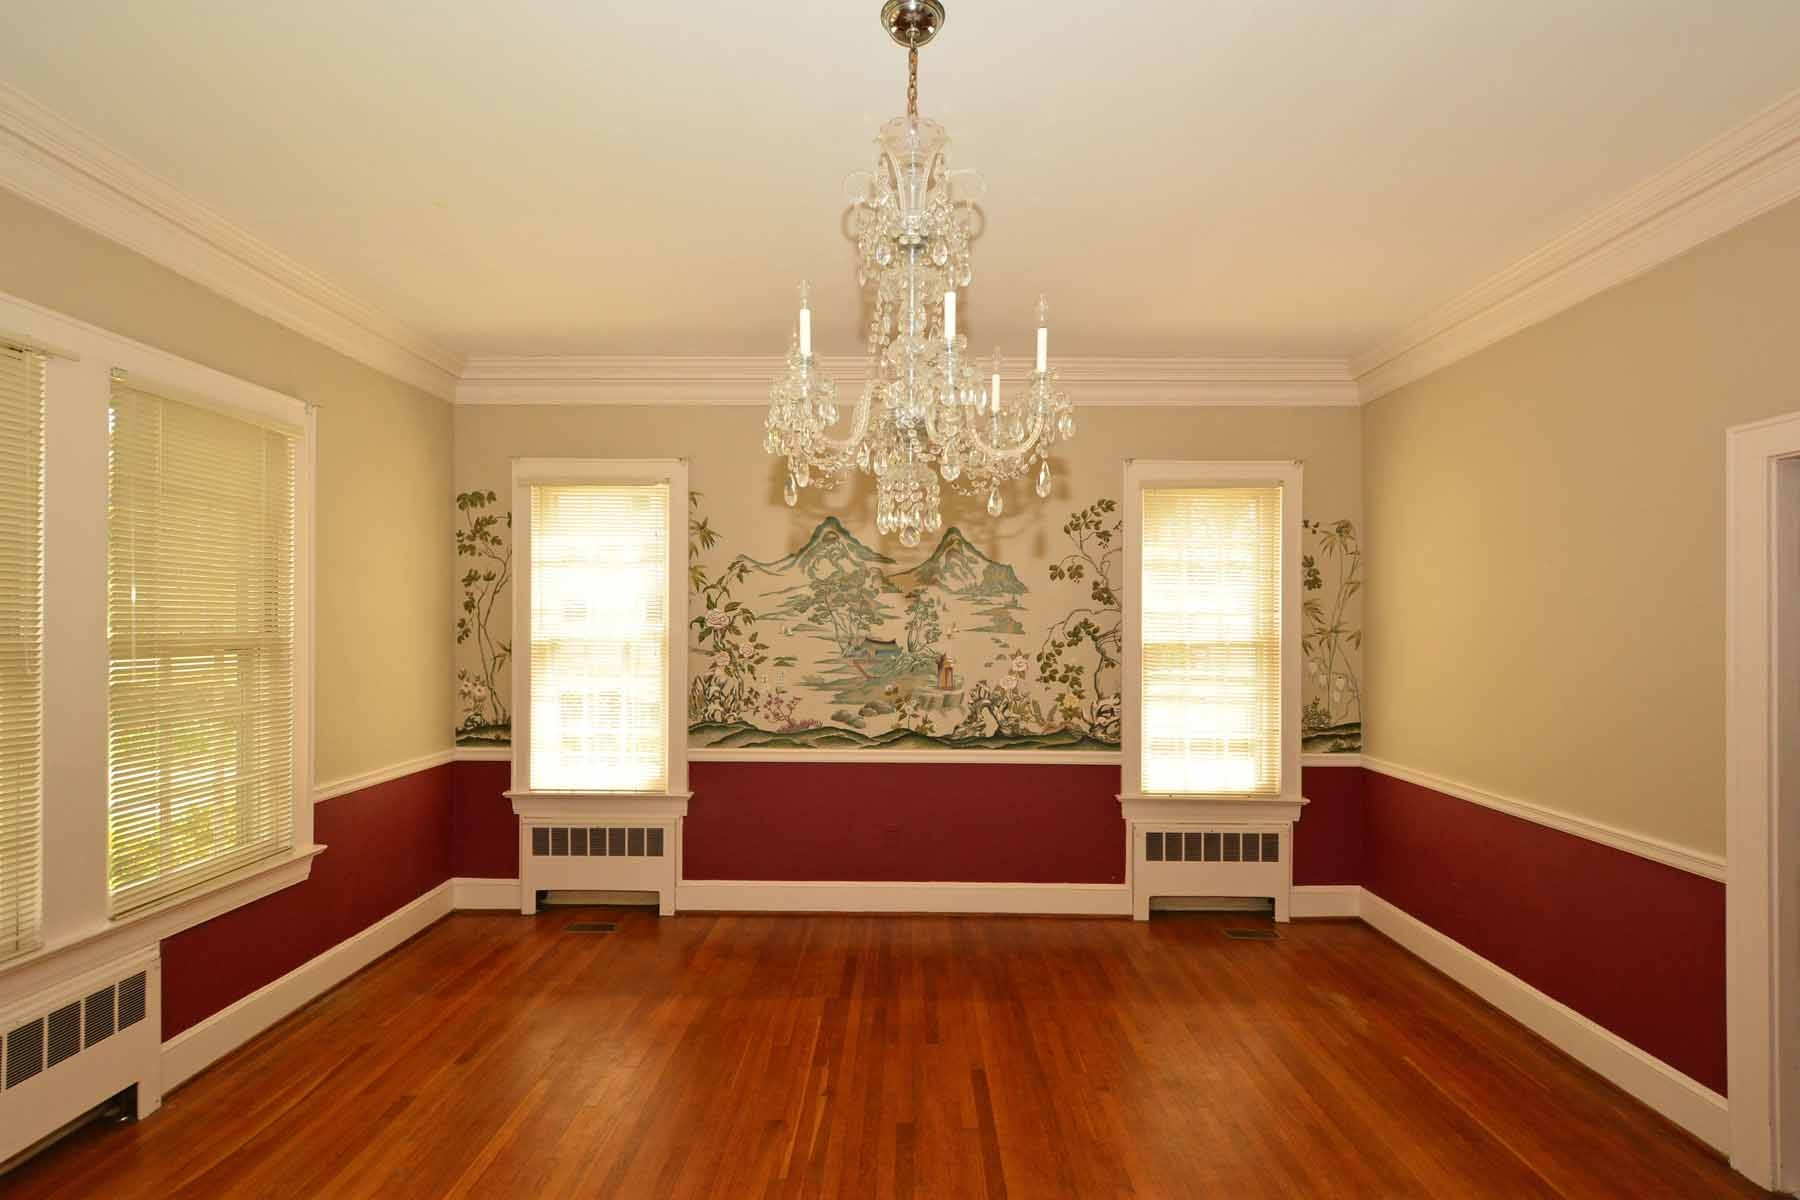 Additional photo for property listing at Bell House 304 N. Main St Warrenton, North Carolina 27589 United States